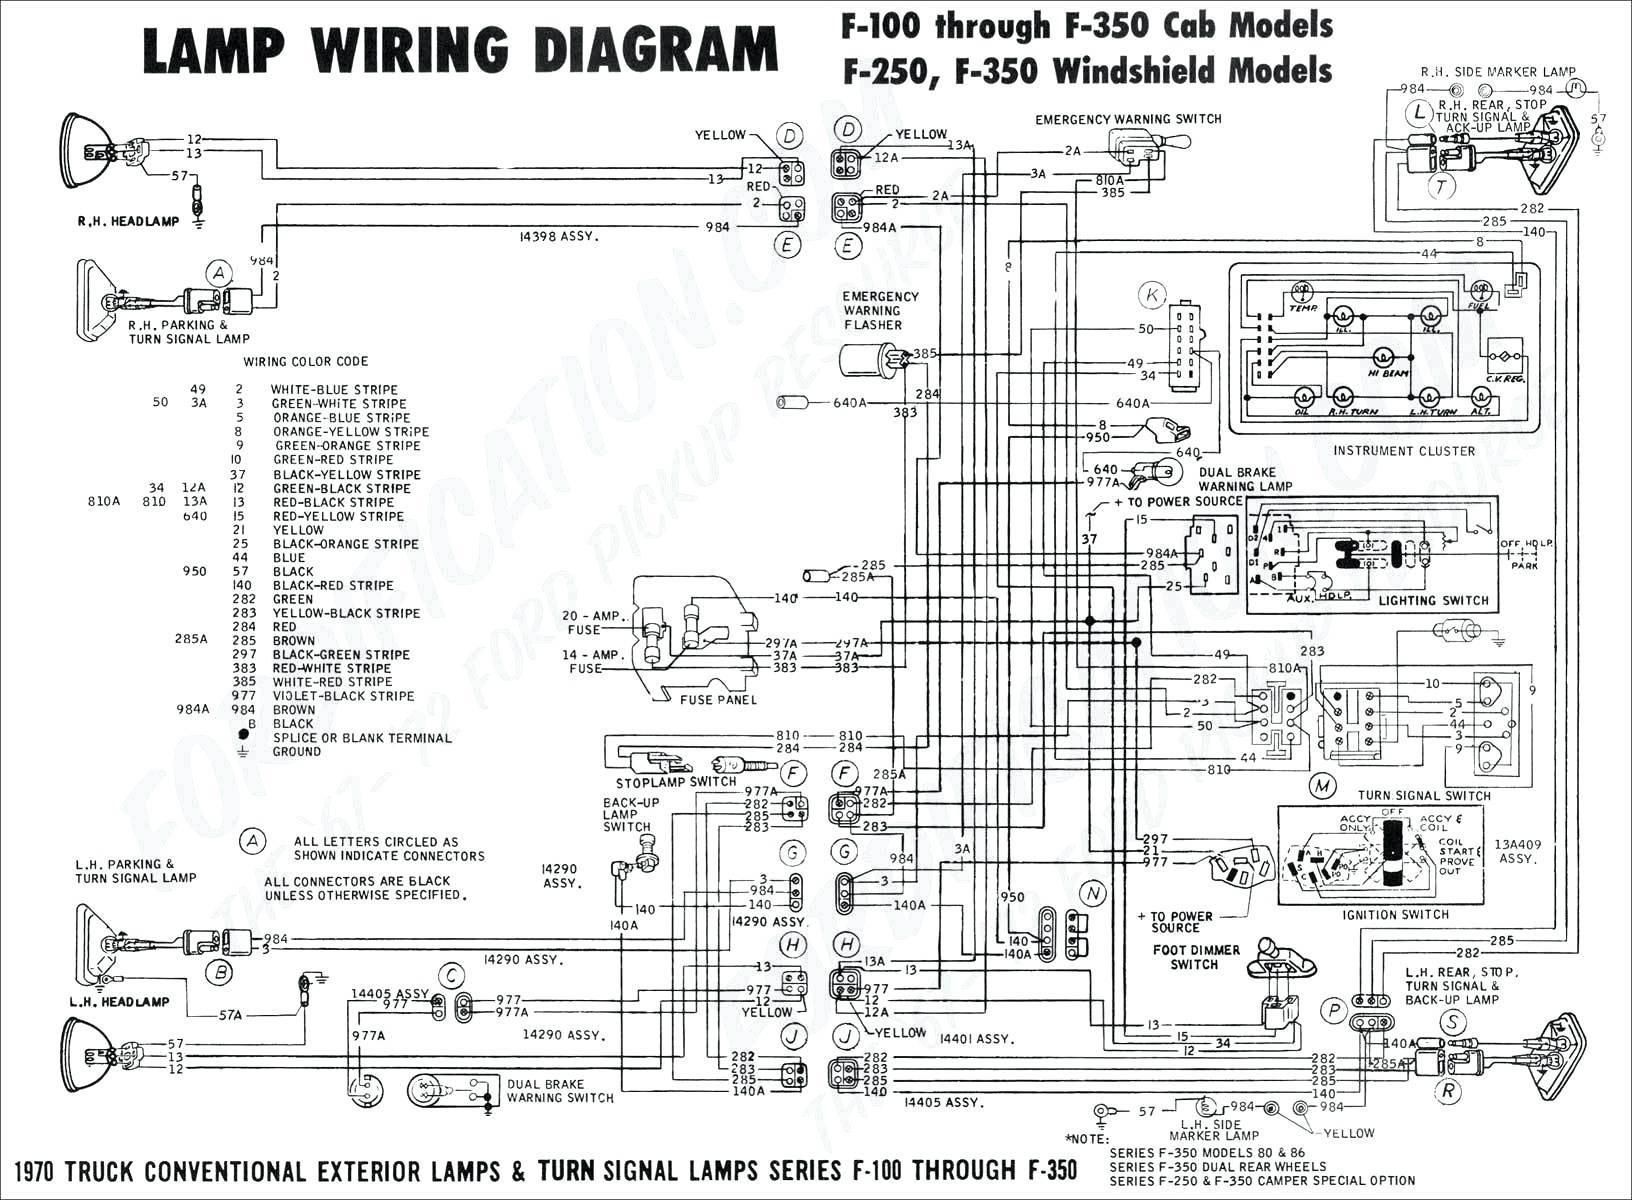 2007 Pontiac G6 Wiring Diagram My Wiring Diagram